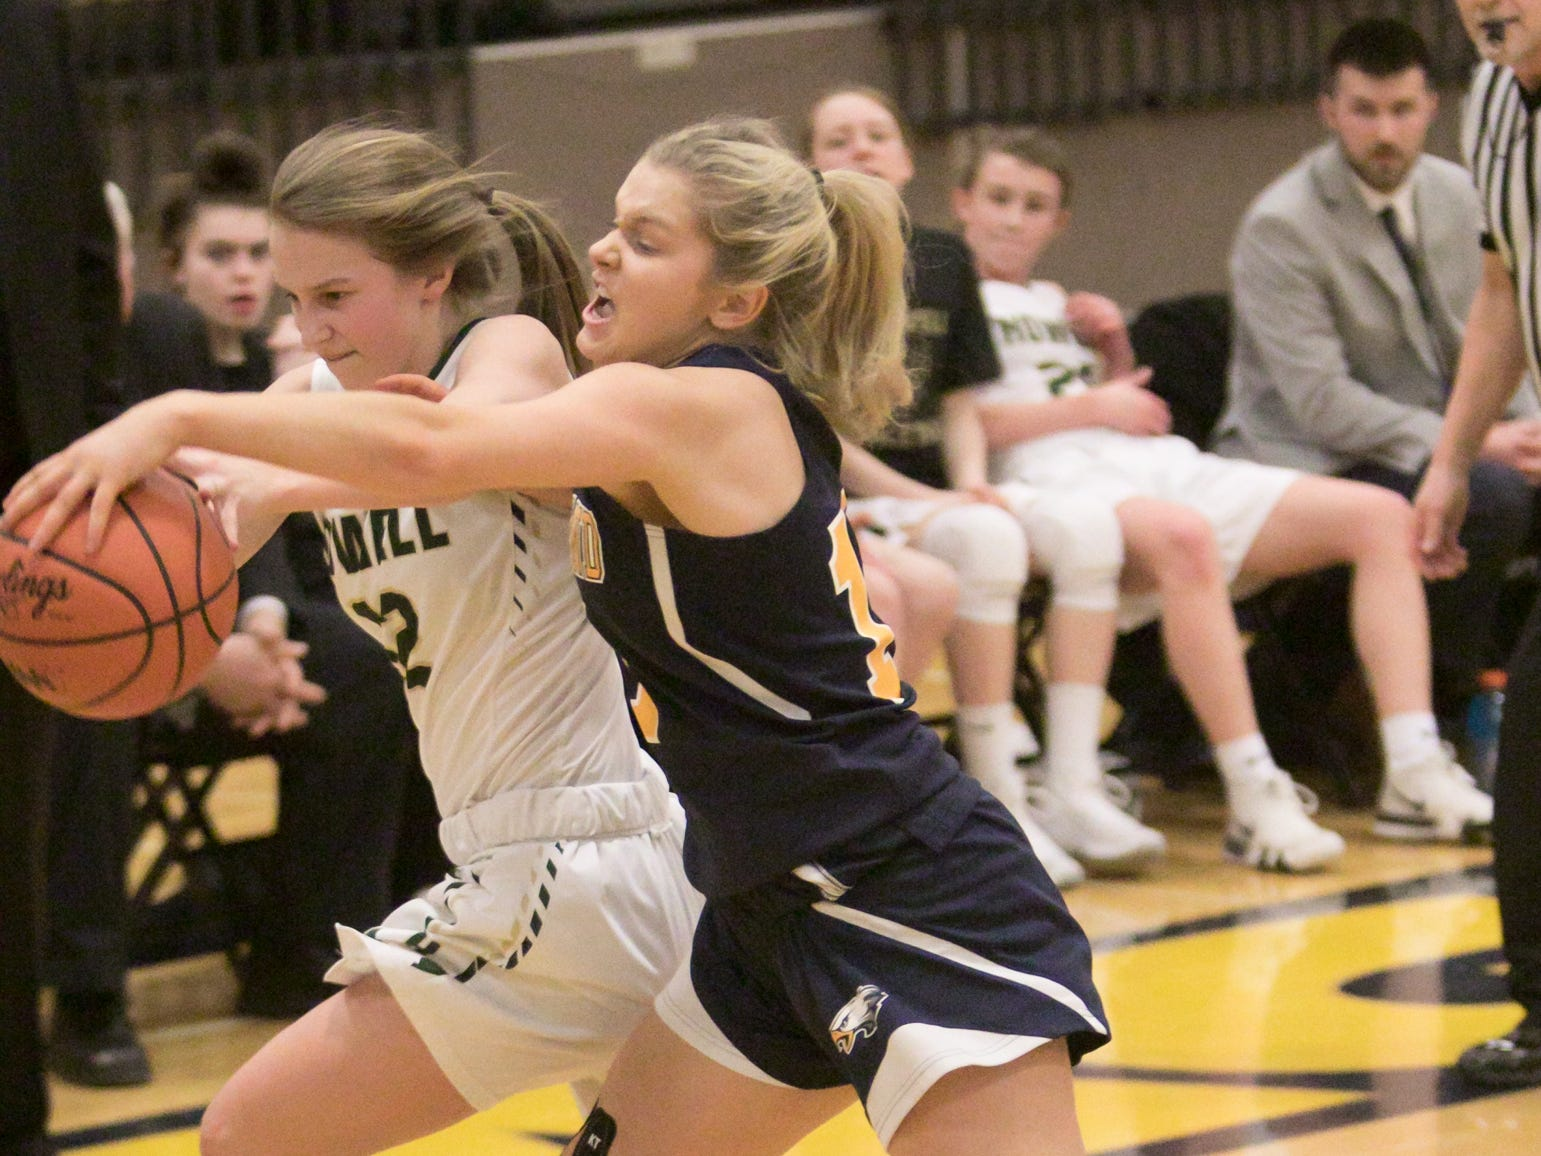 Amanda Roach of Hartland, right, and Howell's Allison Pennala struggle for control of the ball in the district championship game Friday, March 8, 2019.